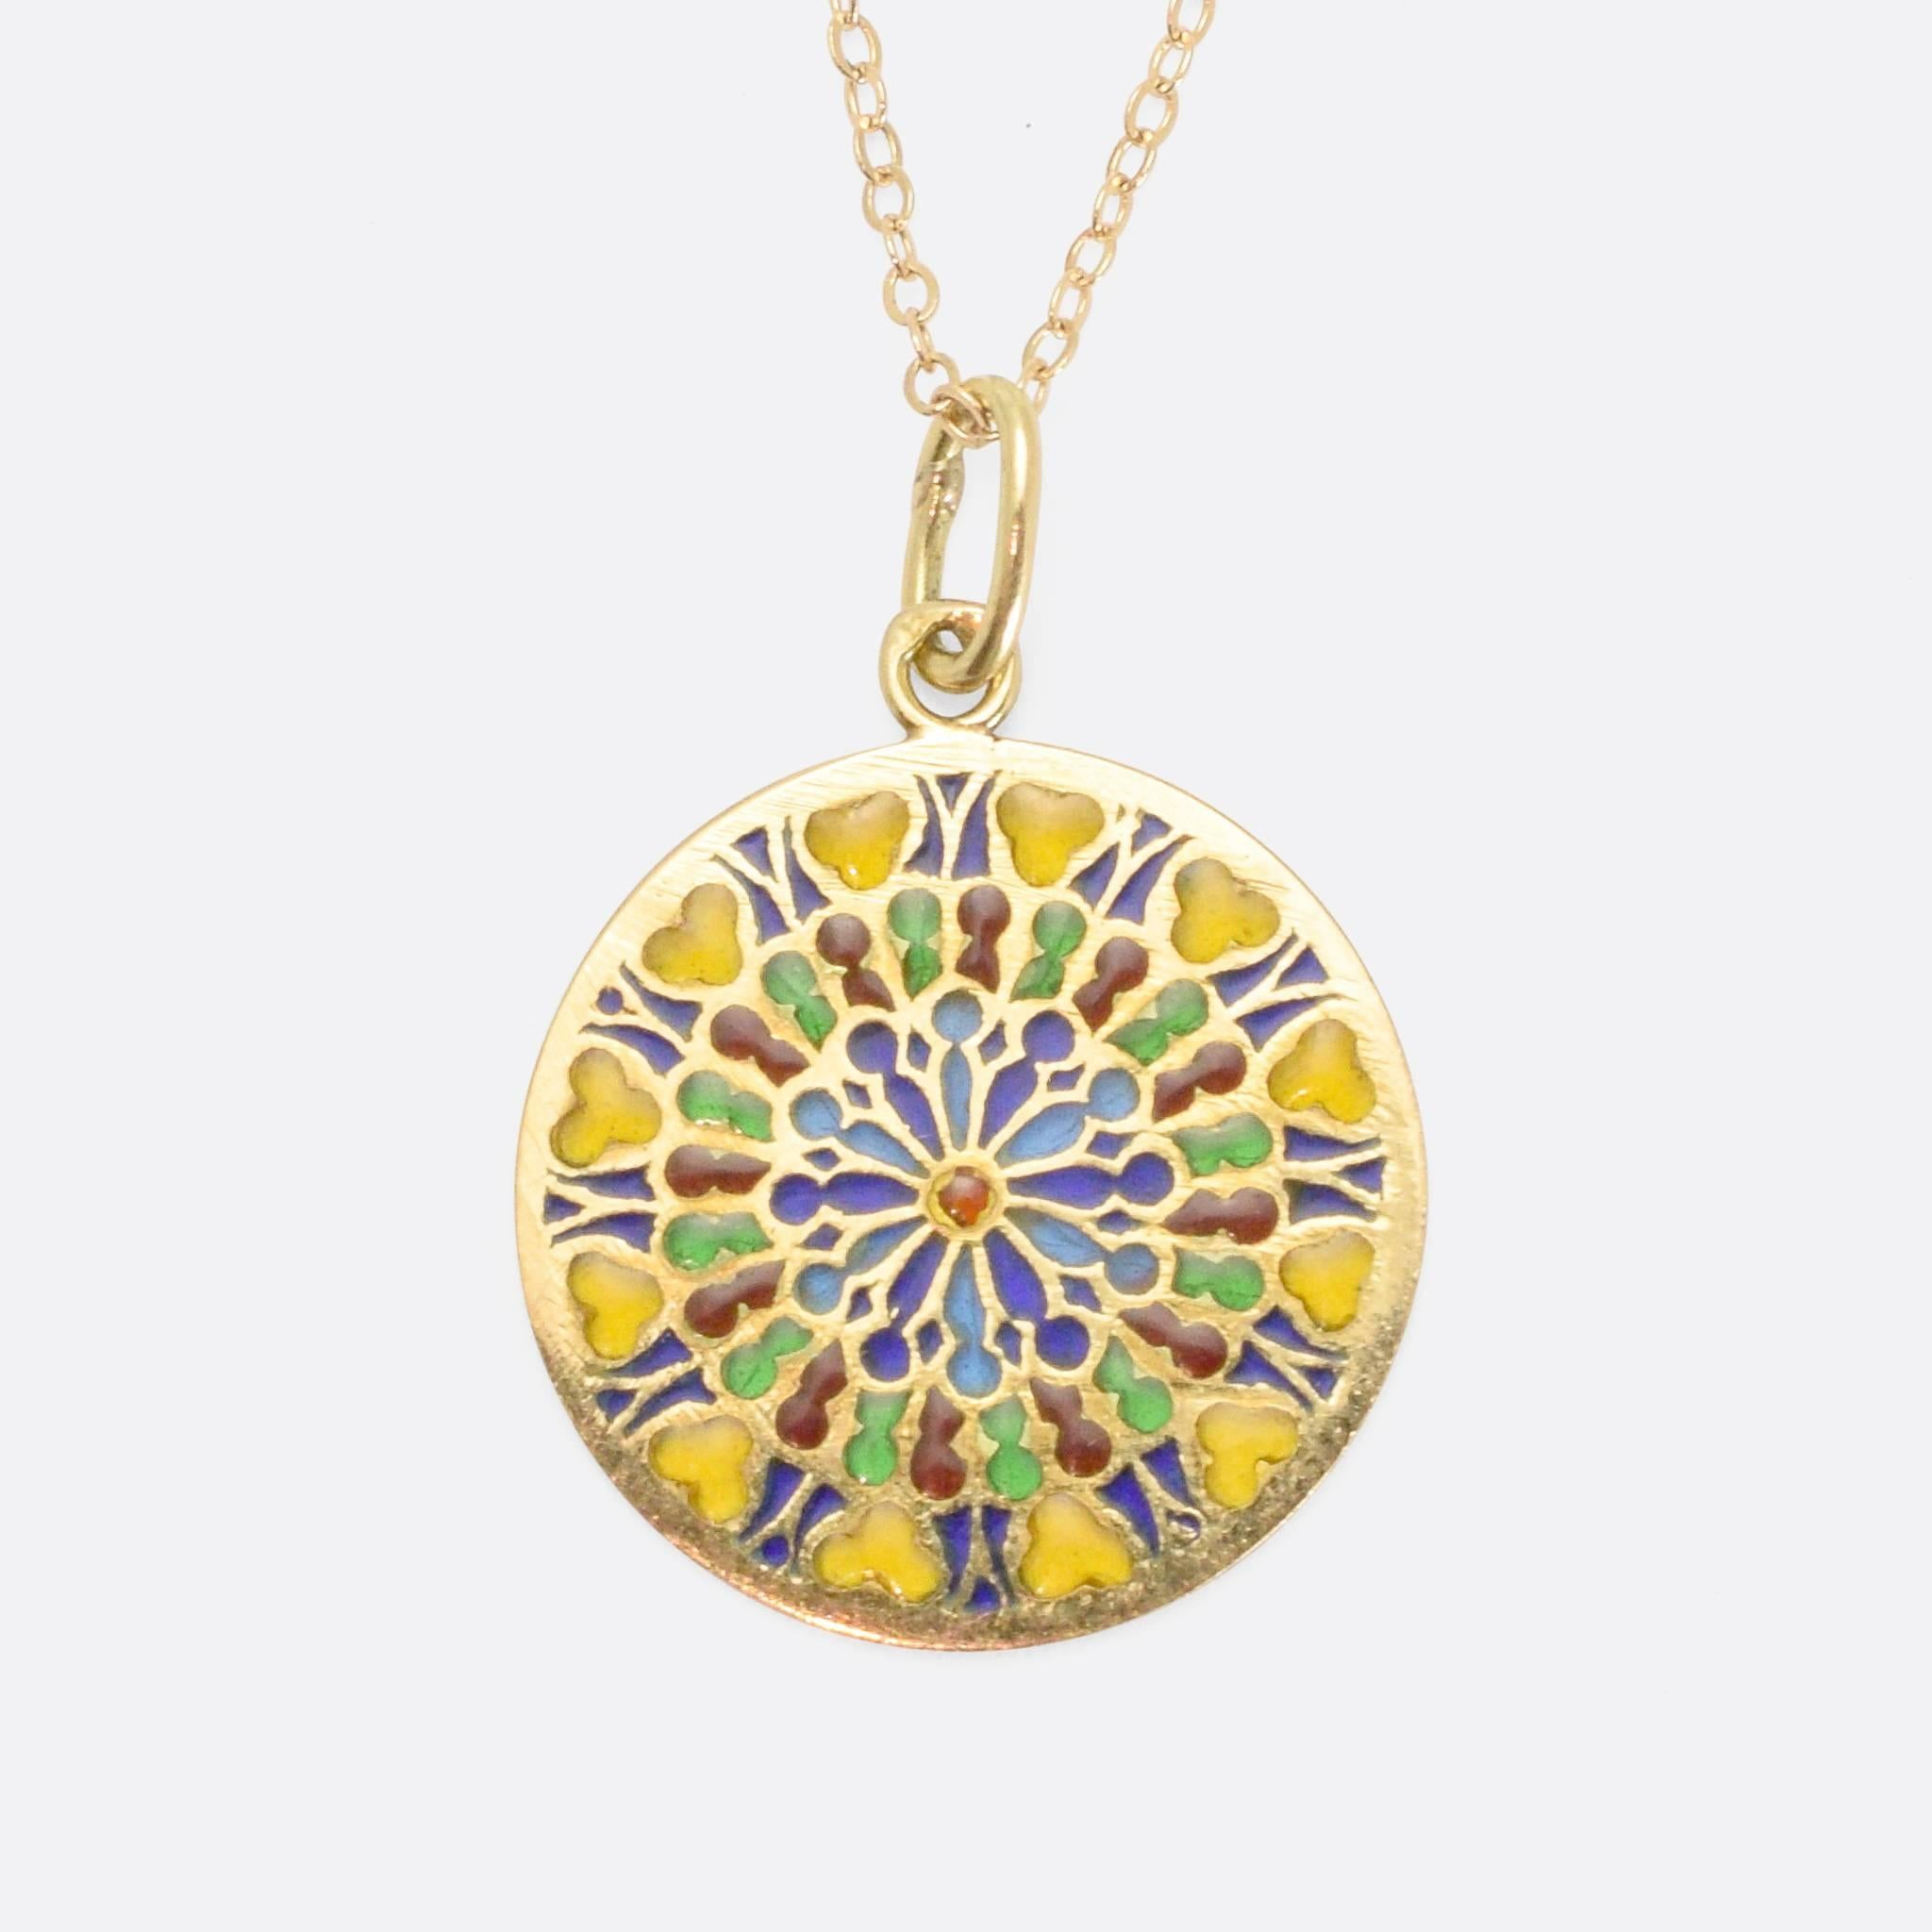 Antique notre dame rose window plique jour pendant 18 karat gold antique notre dame rose window plique jour pendant 18 karat gold circa 1910 at 1stdibs aloadofball Choice Image